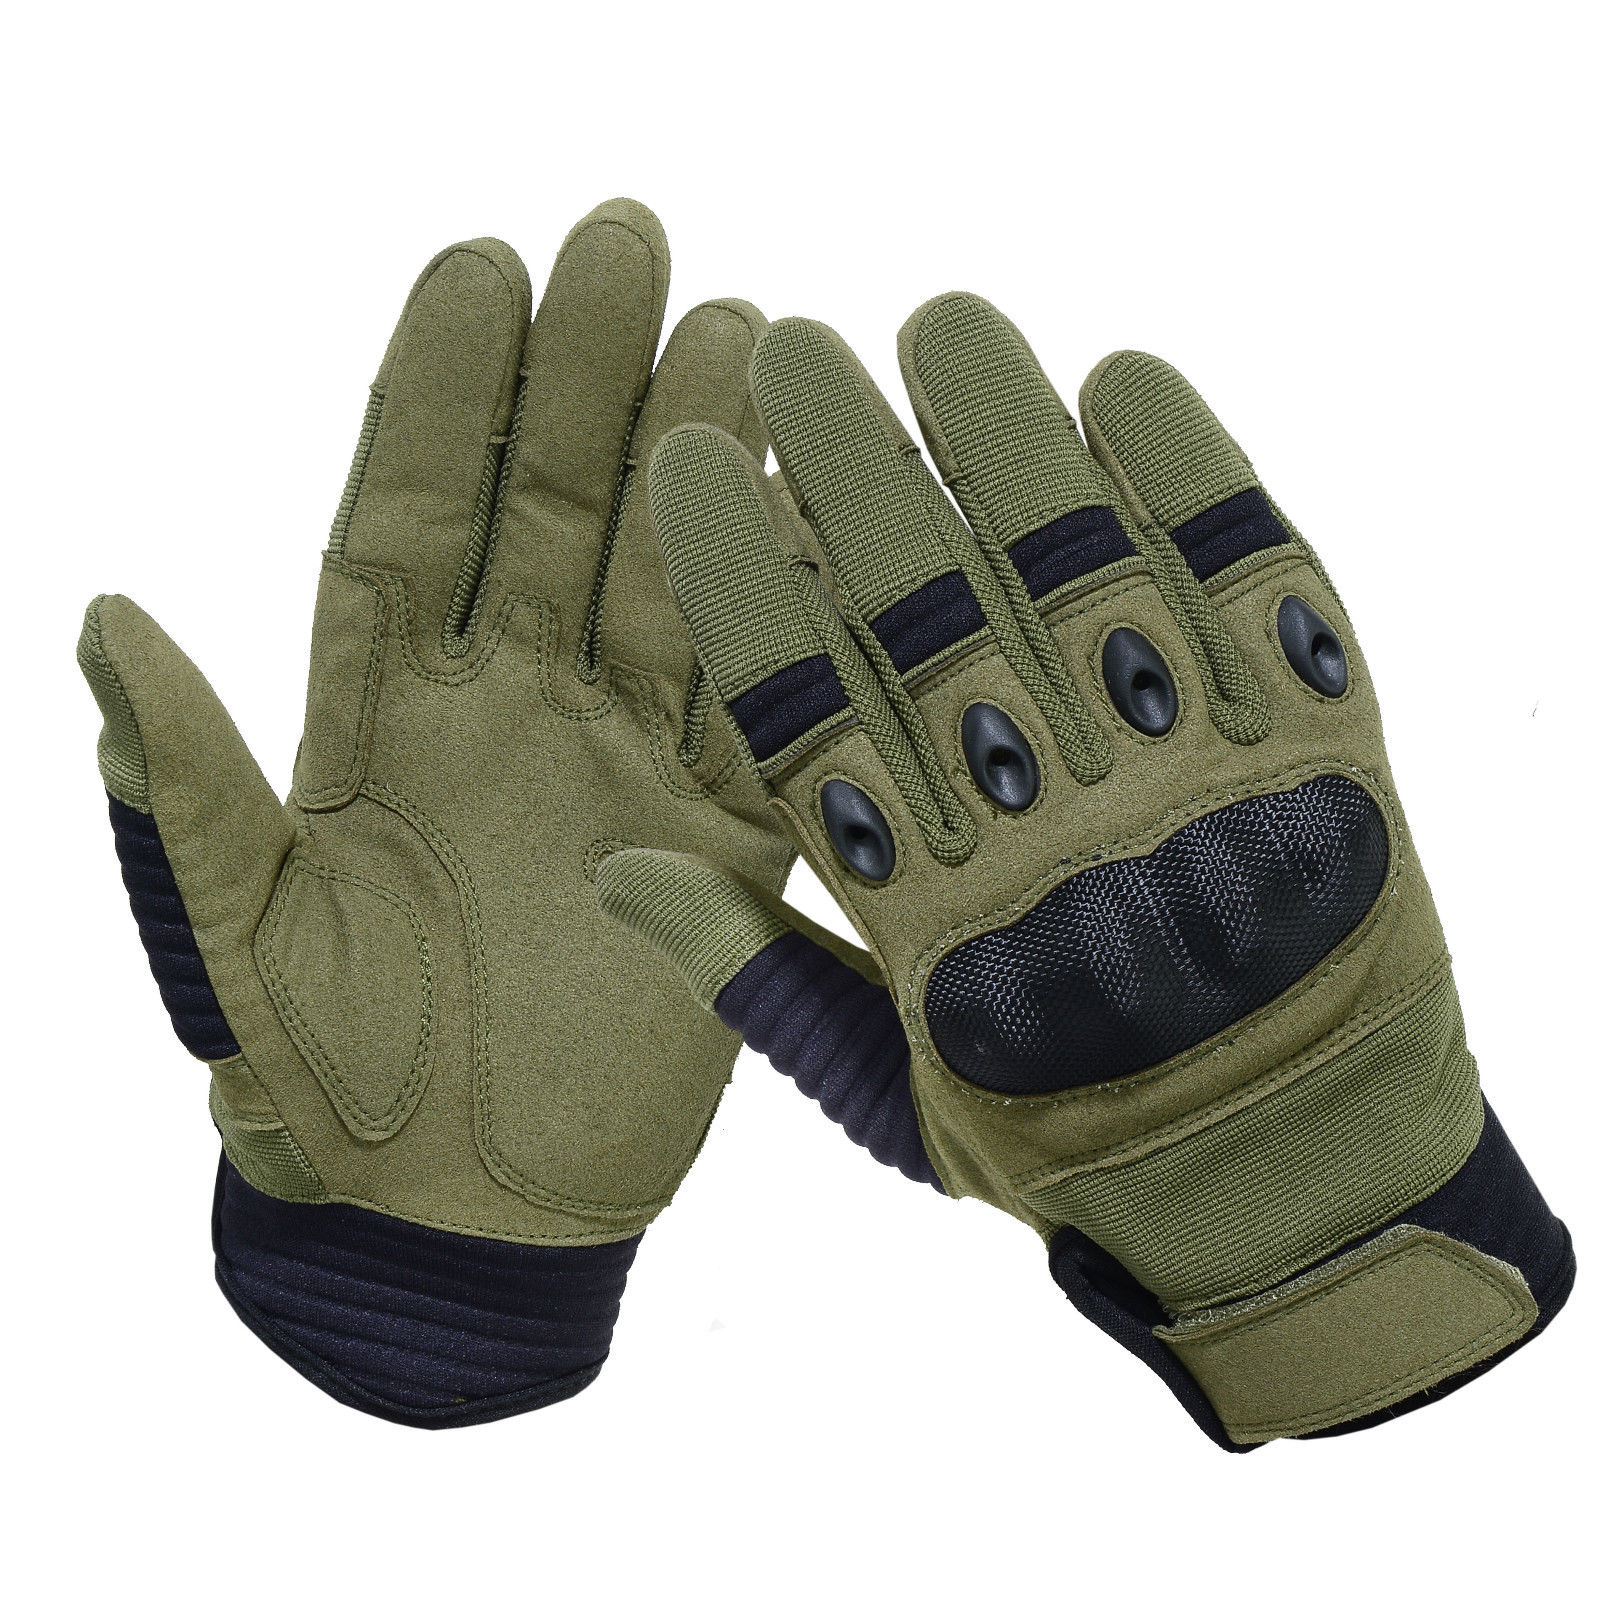 New Brand Tactical Gloves Military Army Paintball Airsoft Shooting Police Carbon Hard Knuckle glove